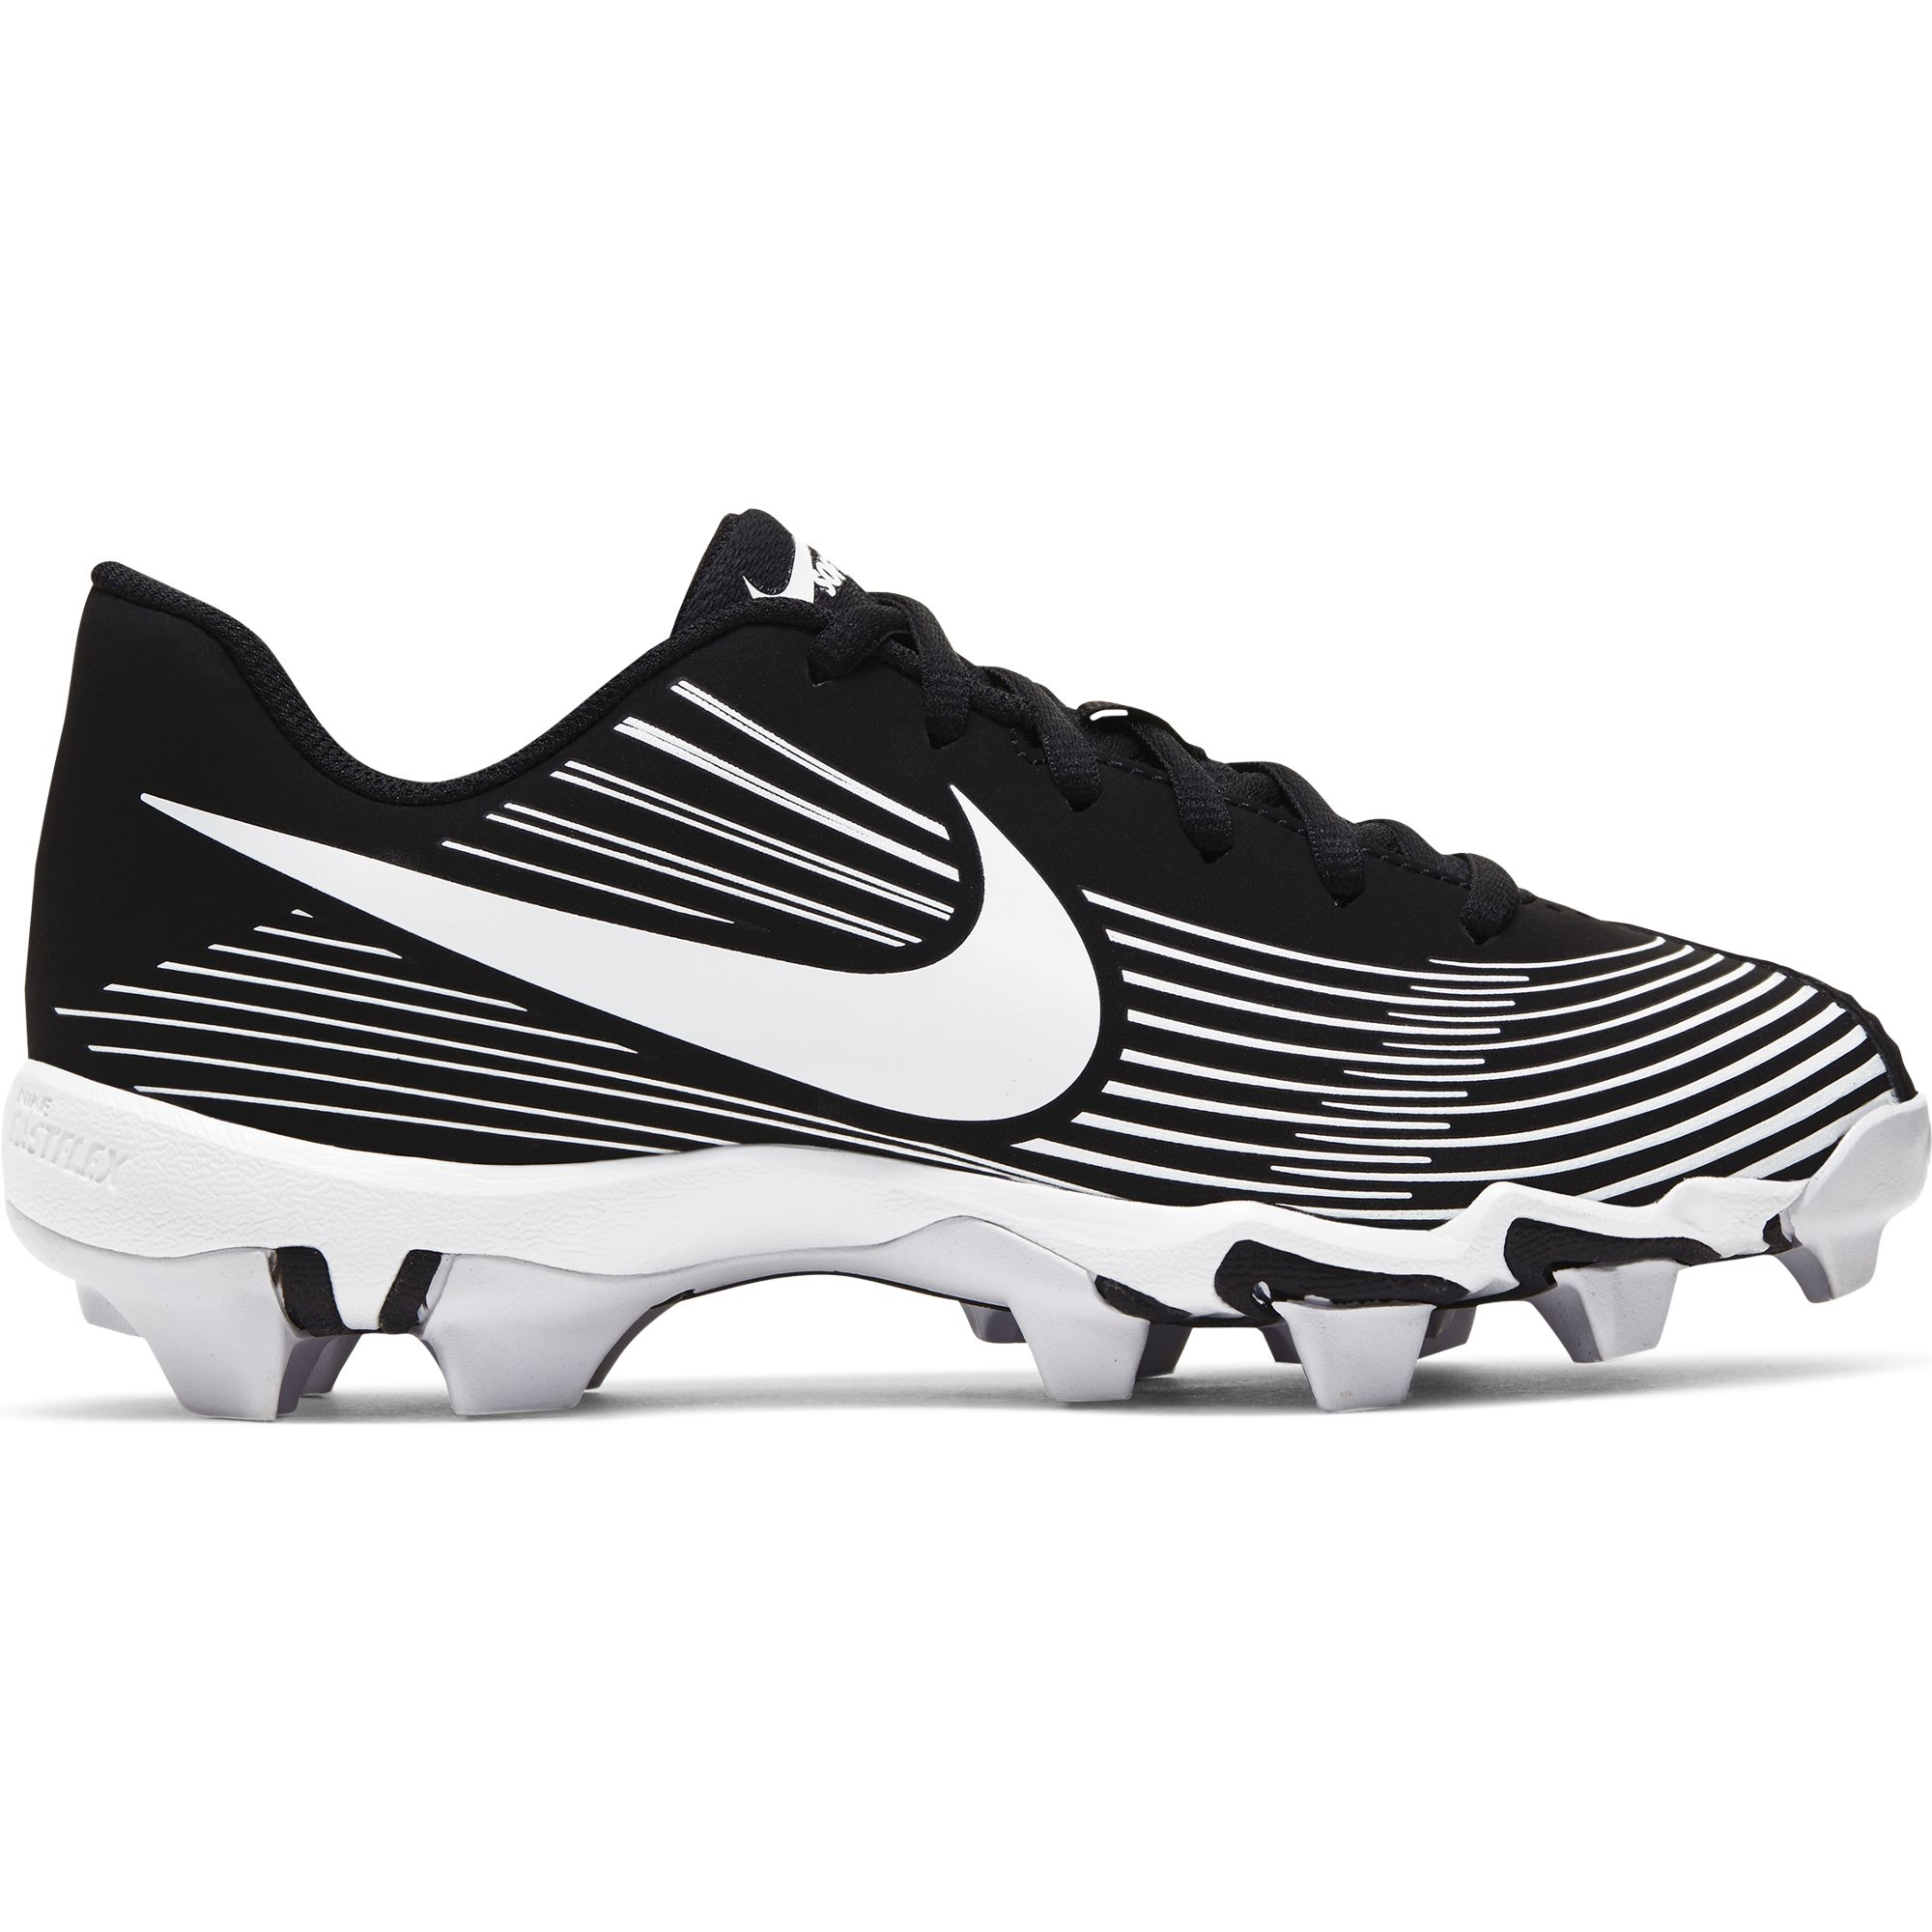 Youth Hyperdiamond 3 Keystone Softball Cleat, , large